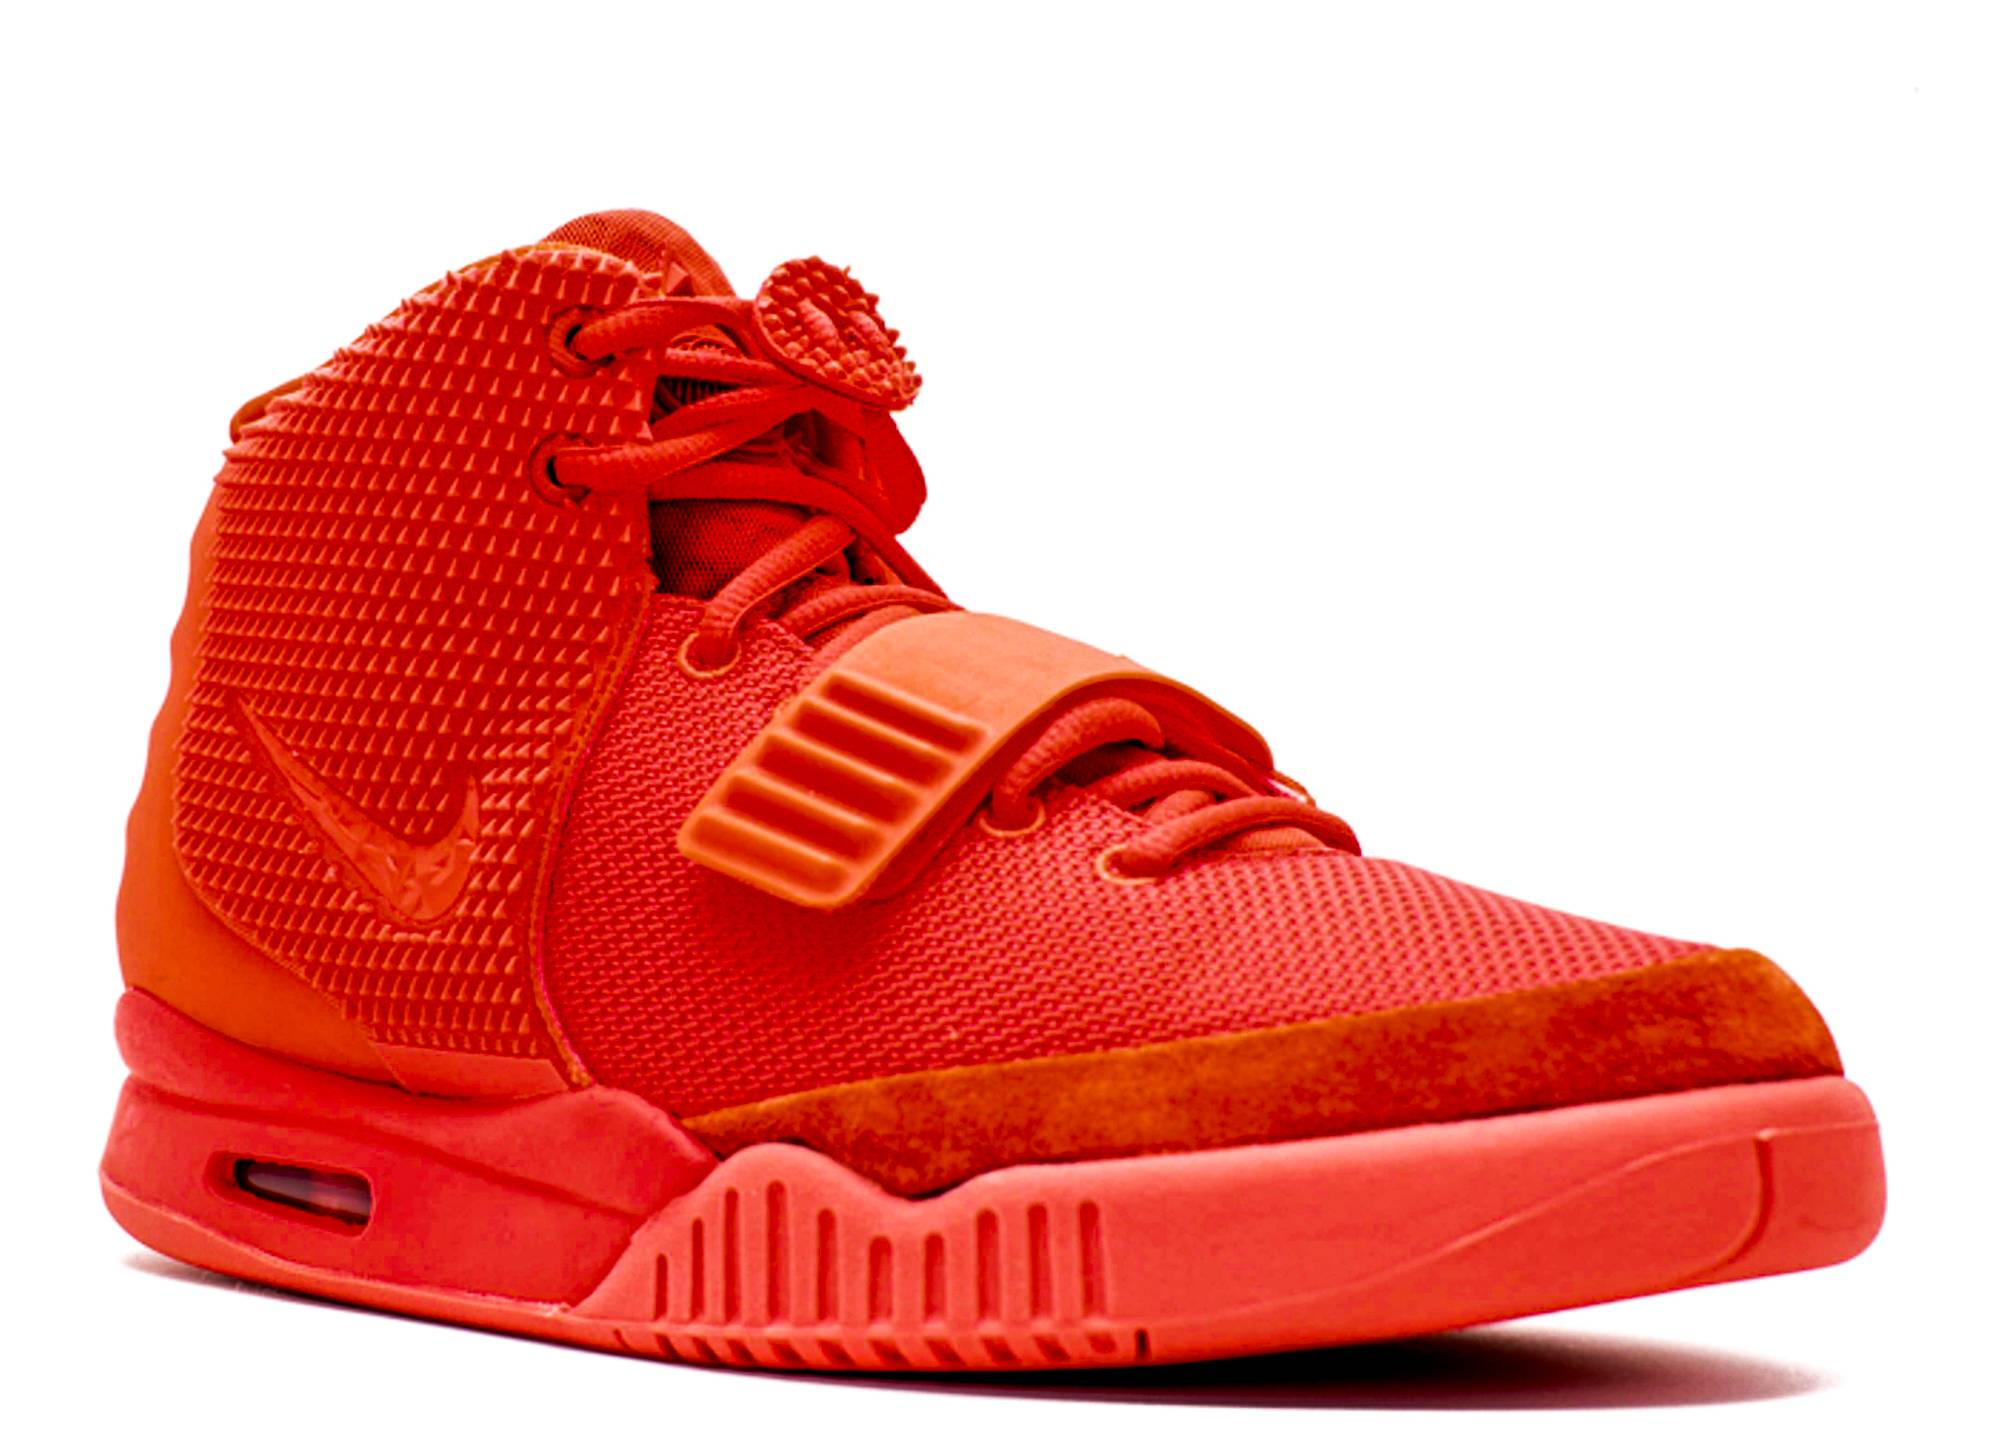 air yeezy 2 sp quotred octoberquot nike 508214 660 redred